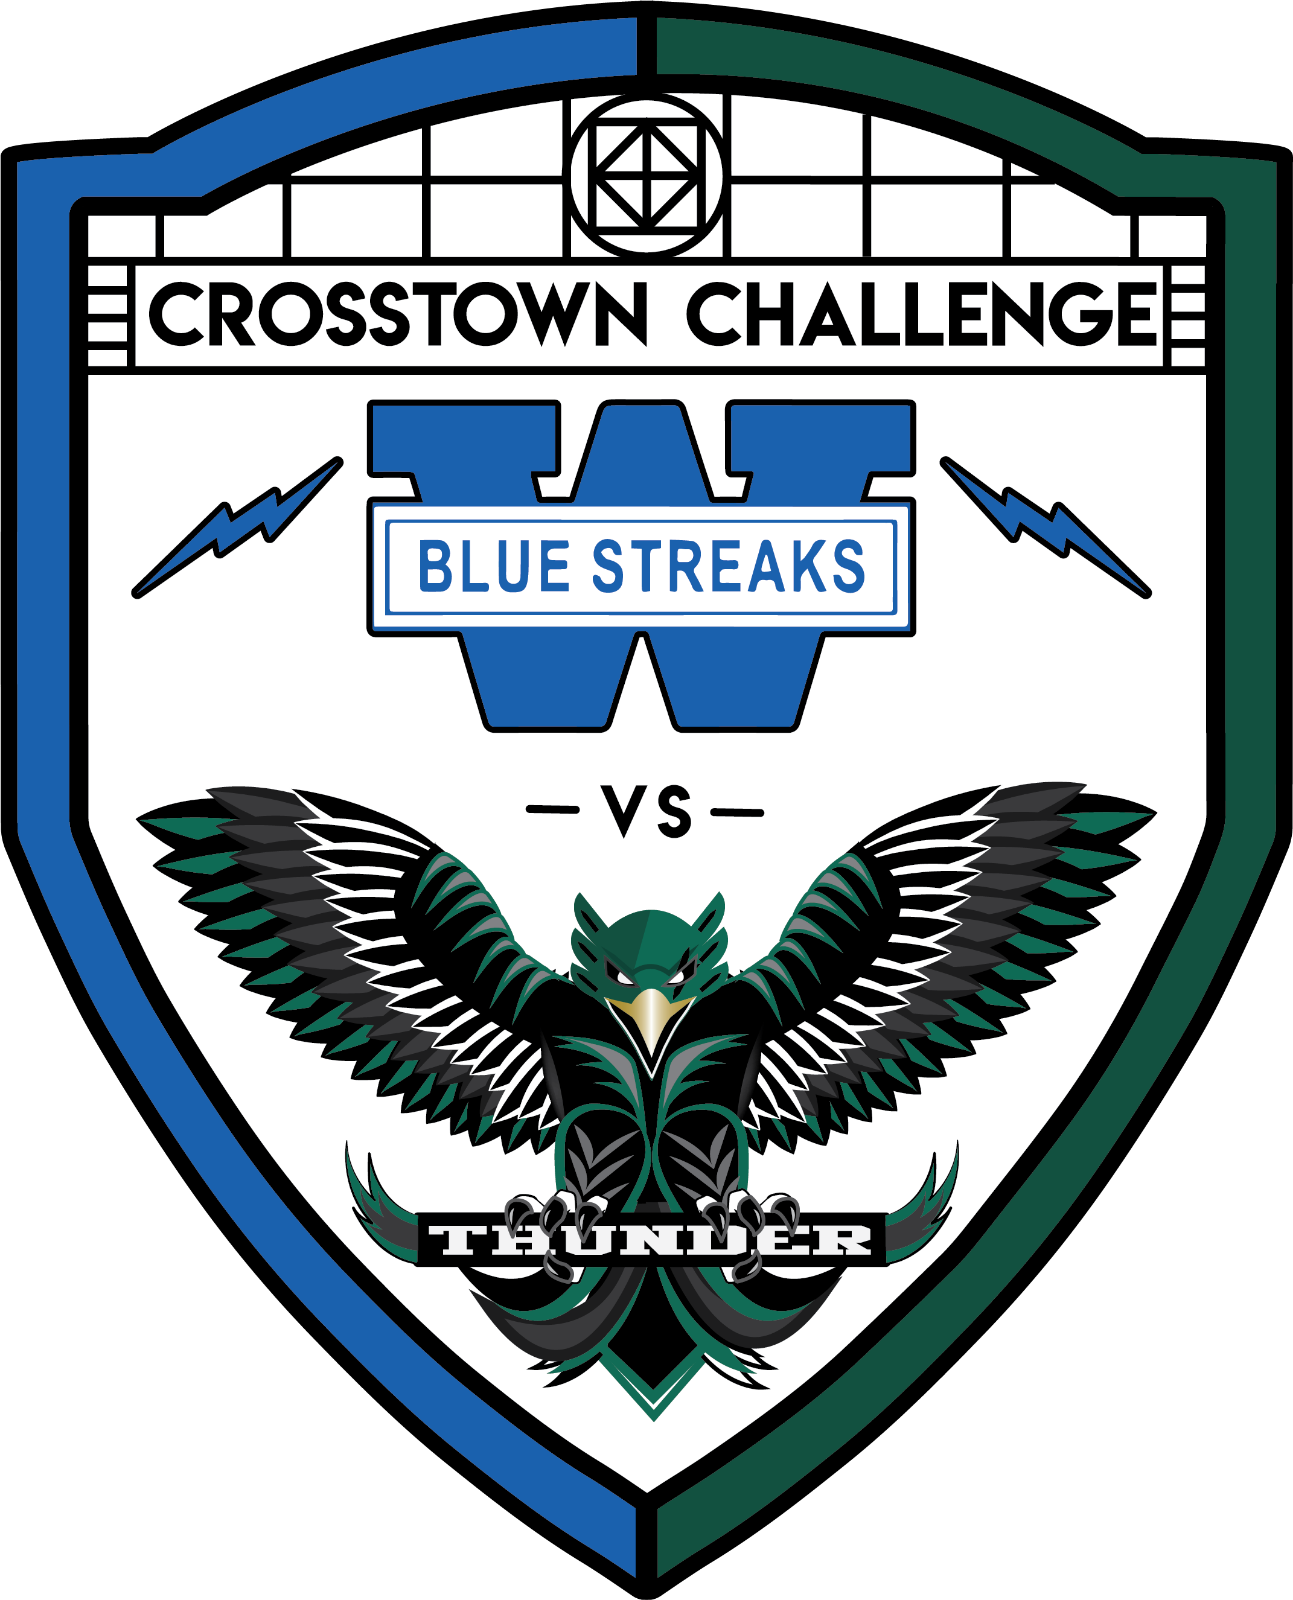 Crosstown Challenge Game Info